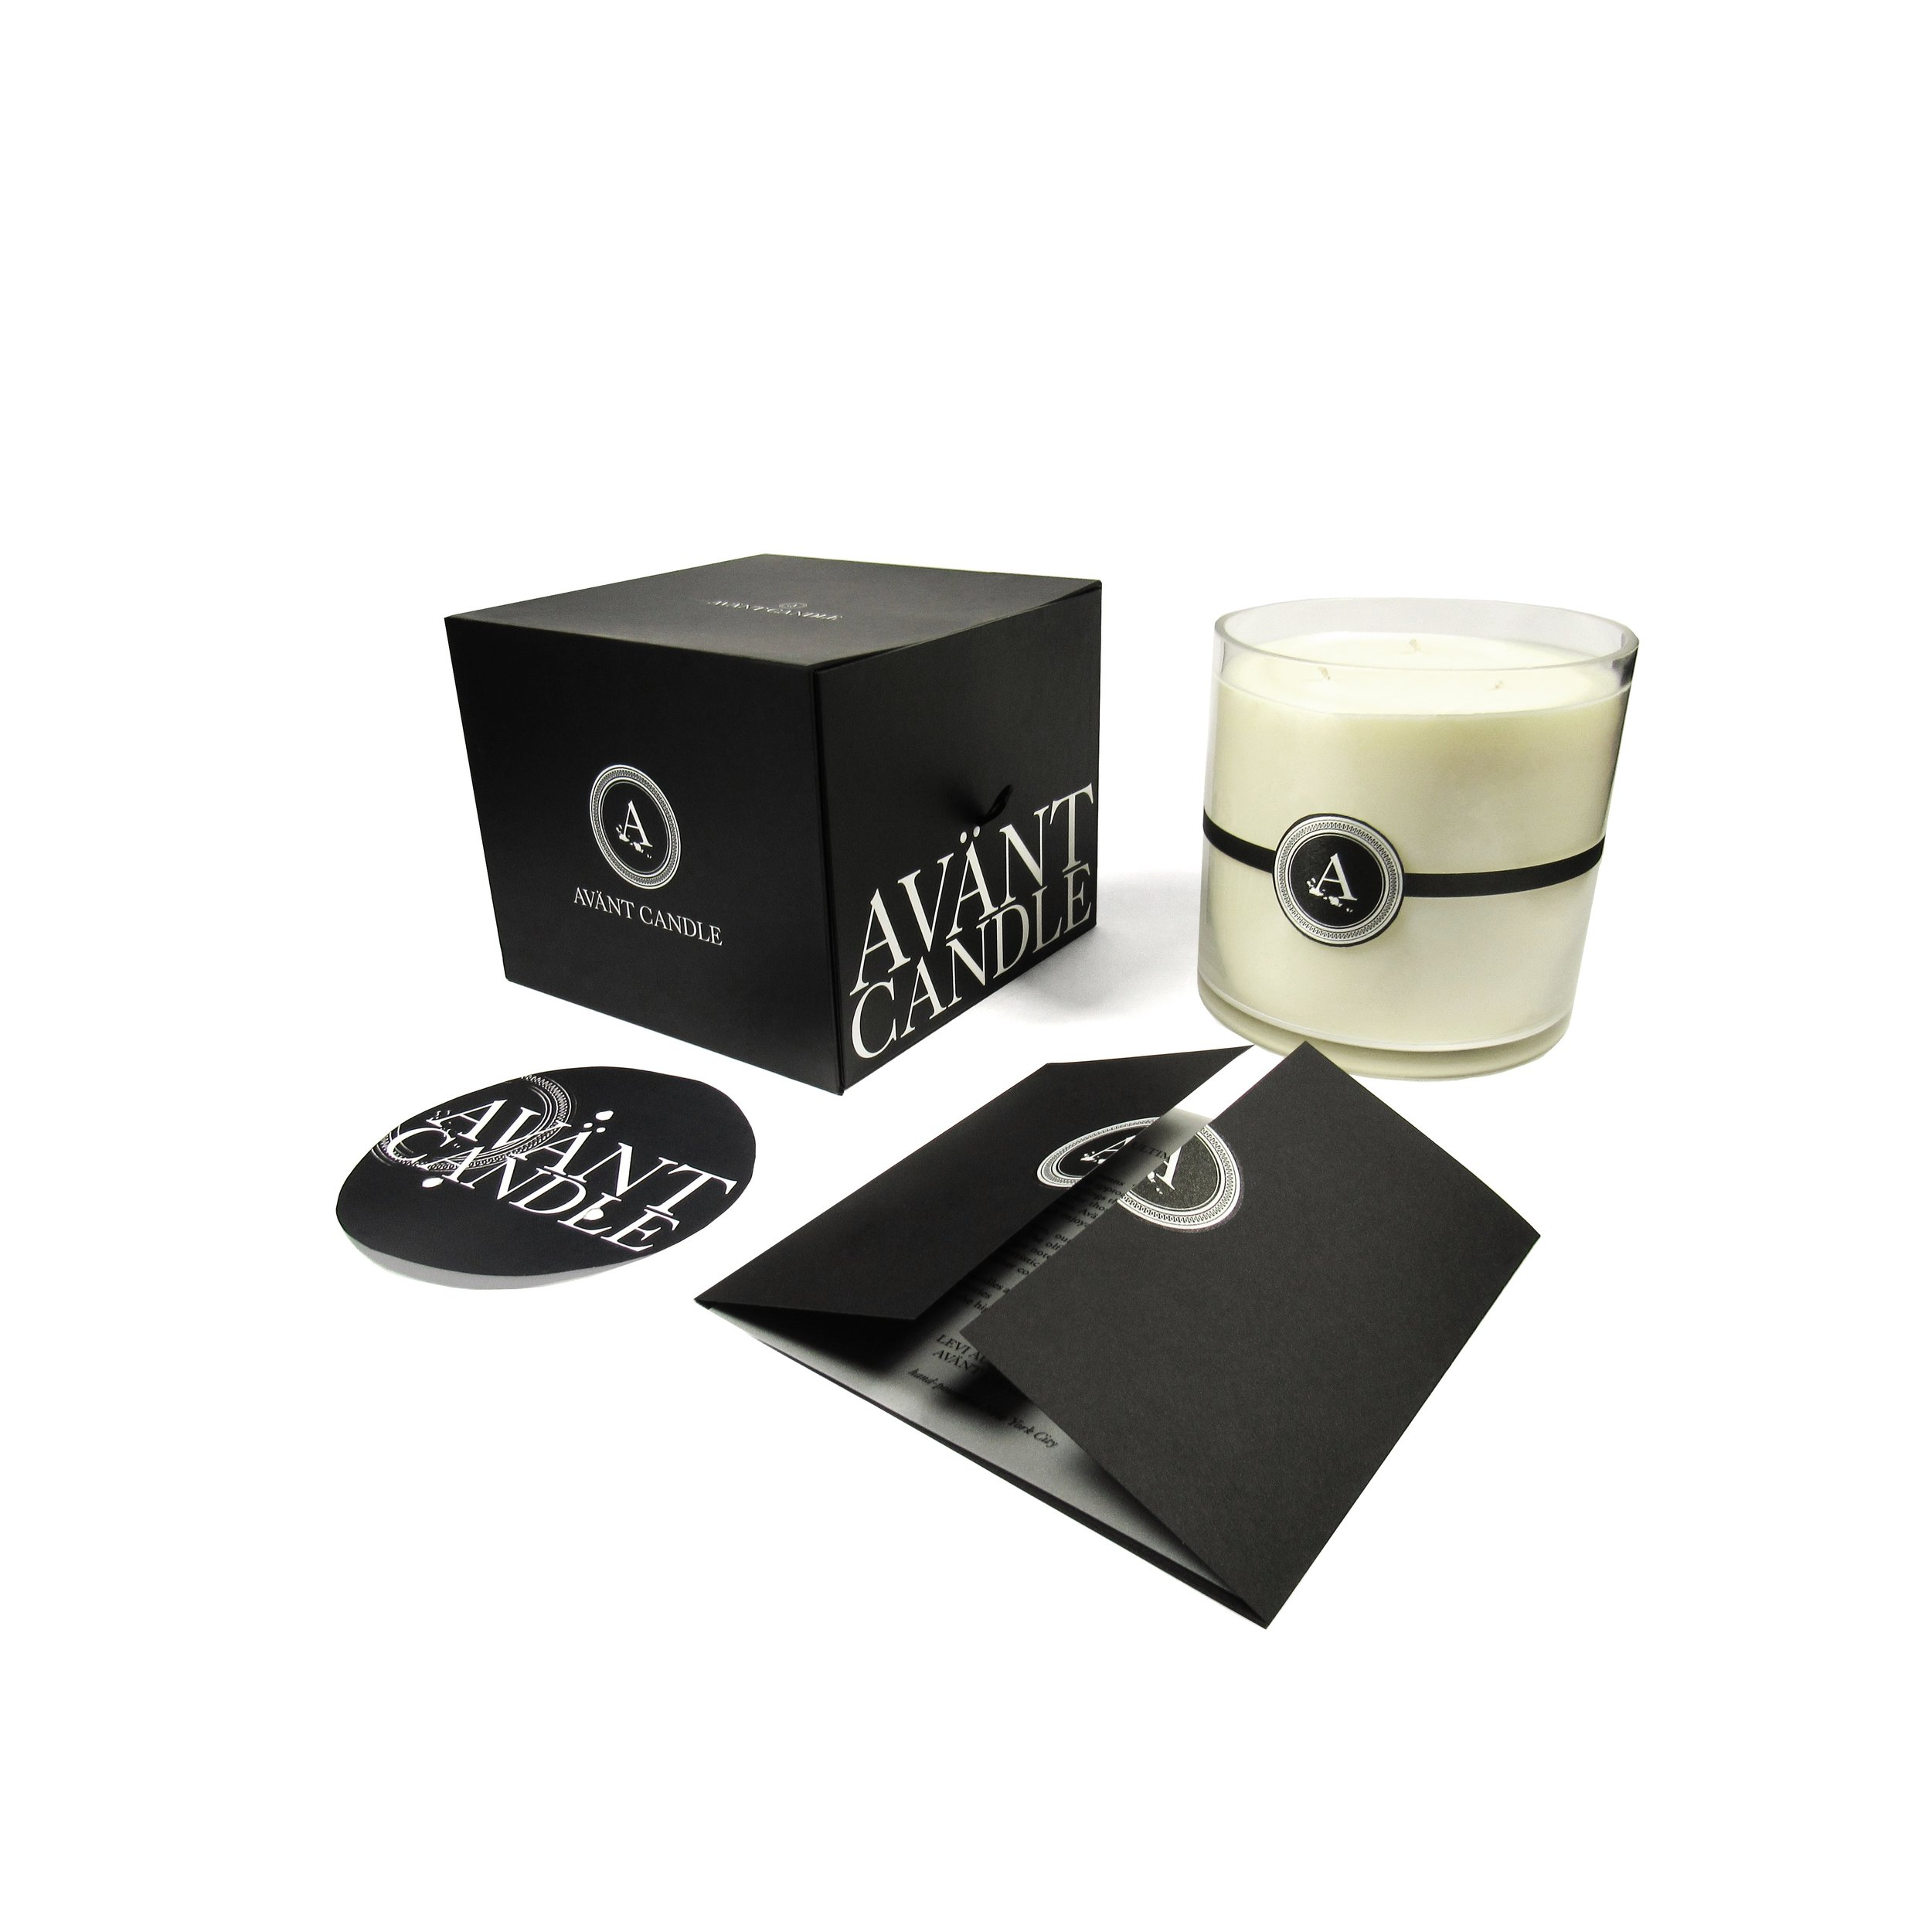 Includes:   70-ounce Candle, Card, Dust Cover & Packaging